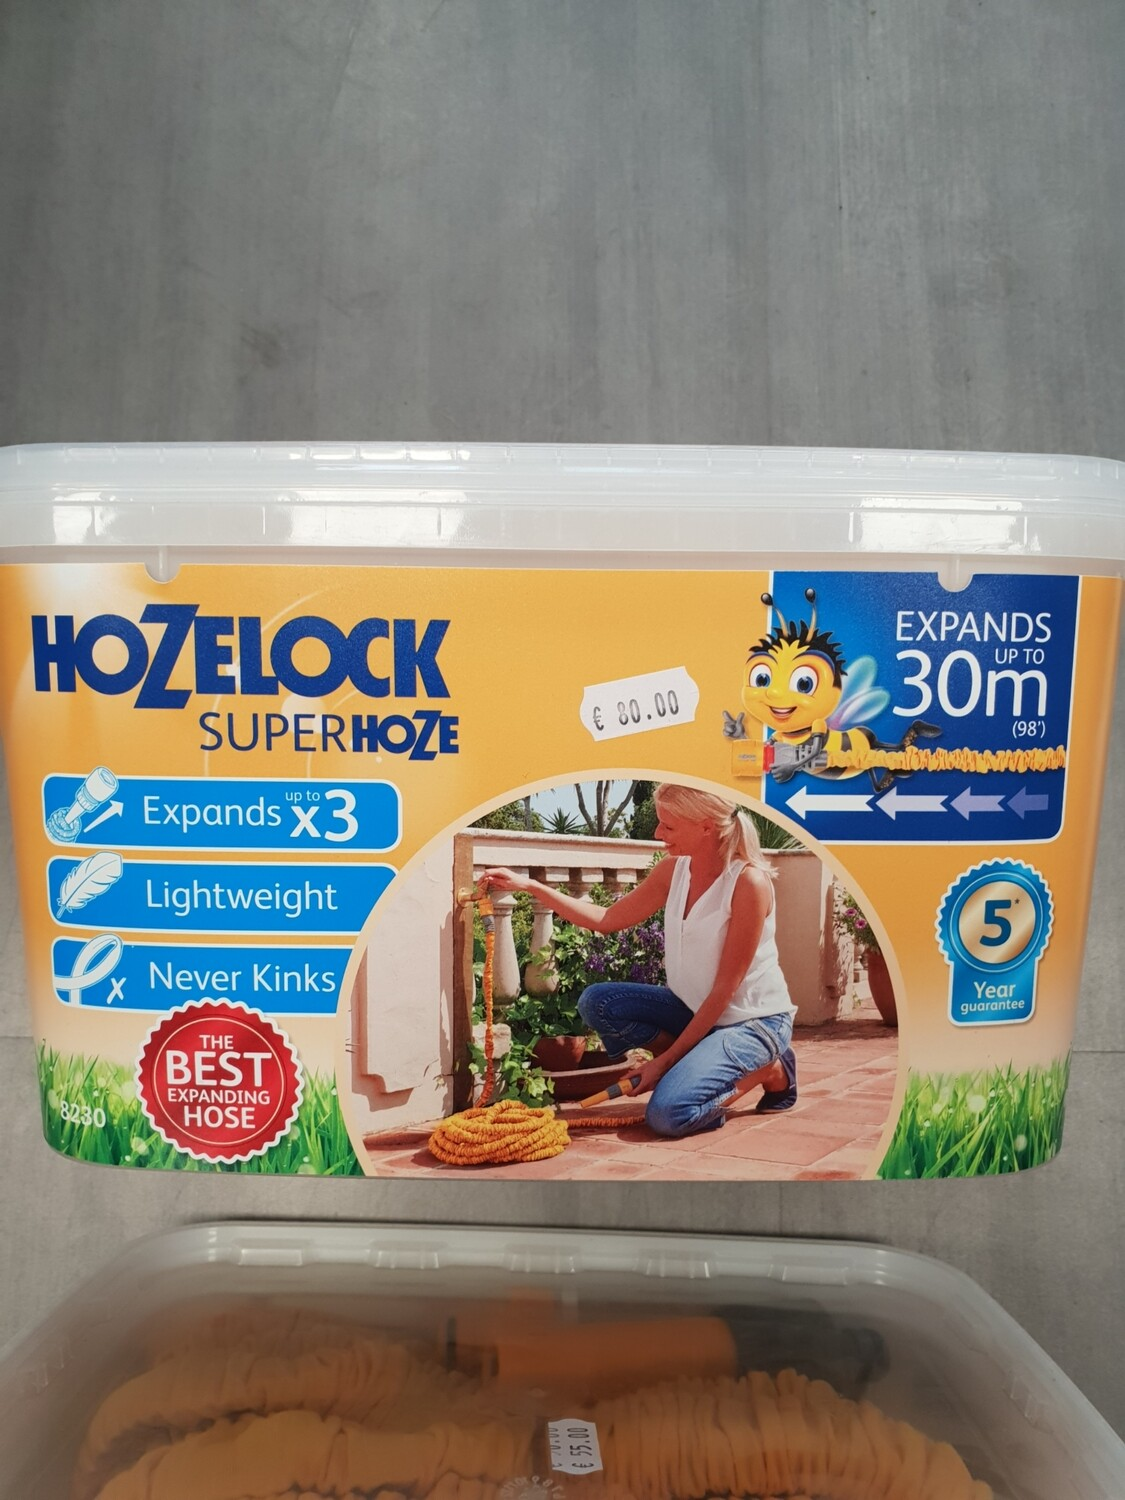 Hozelock superhoze 30m ALSO 15M